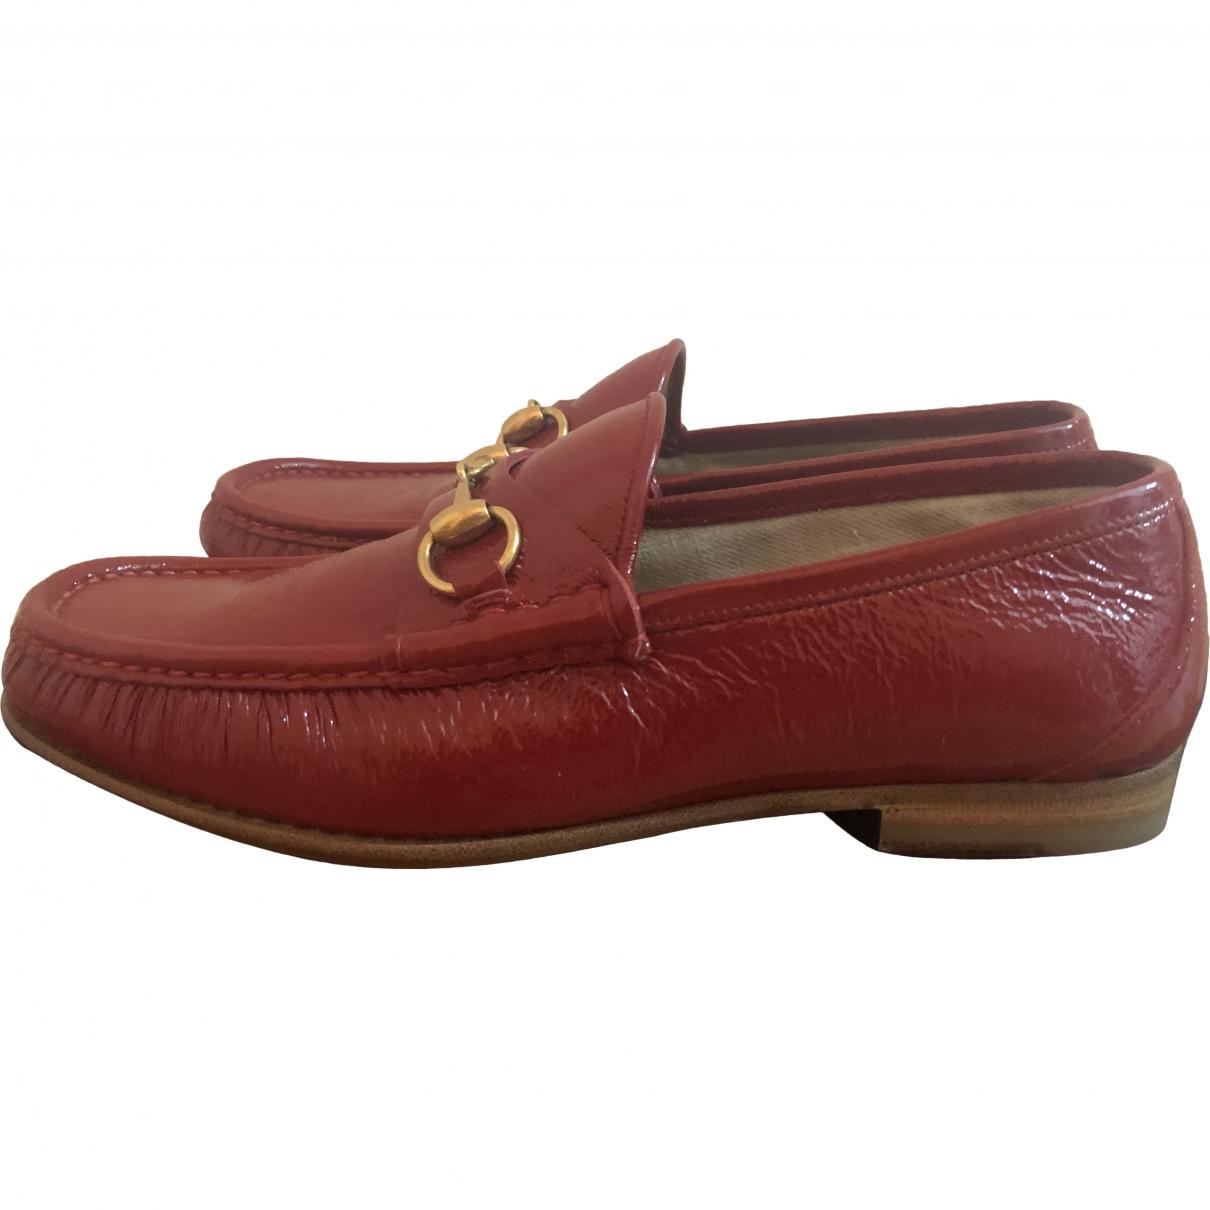 Gucci \N Red Patent leather Flats for Men 7.5 UK